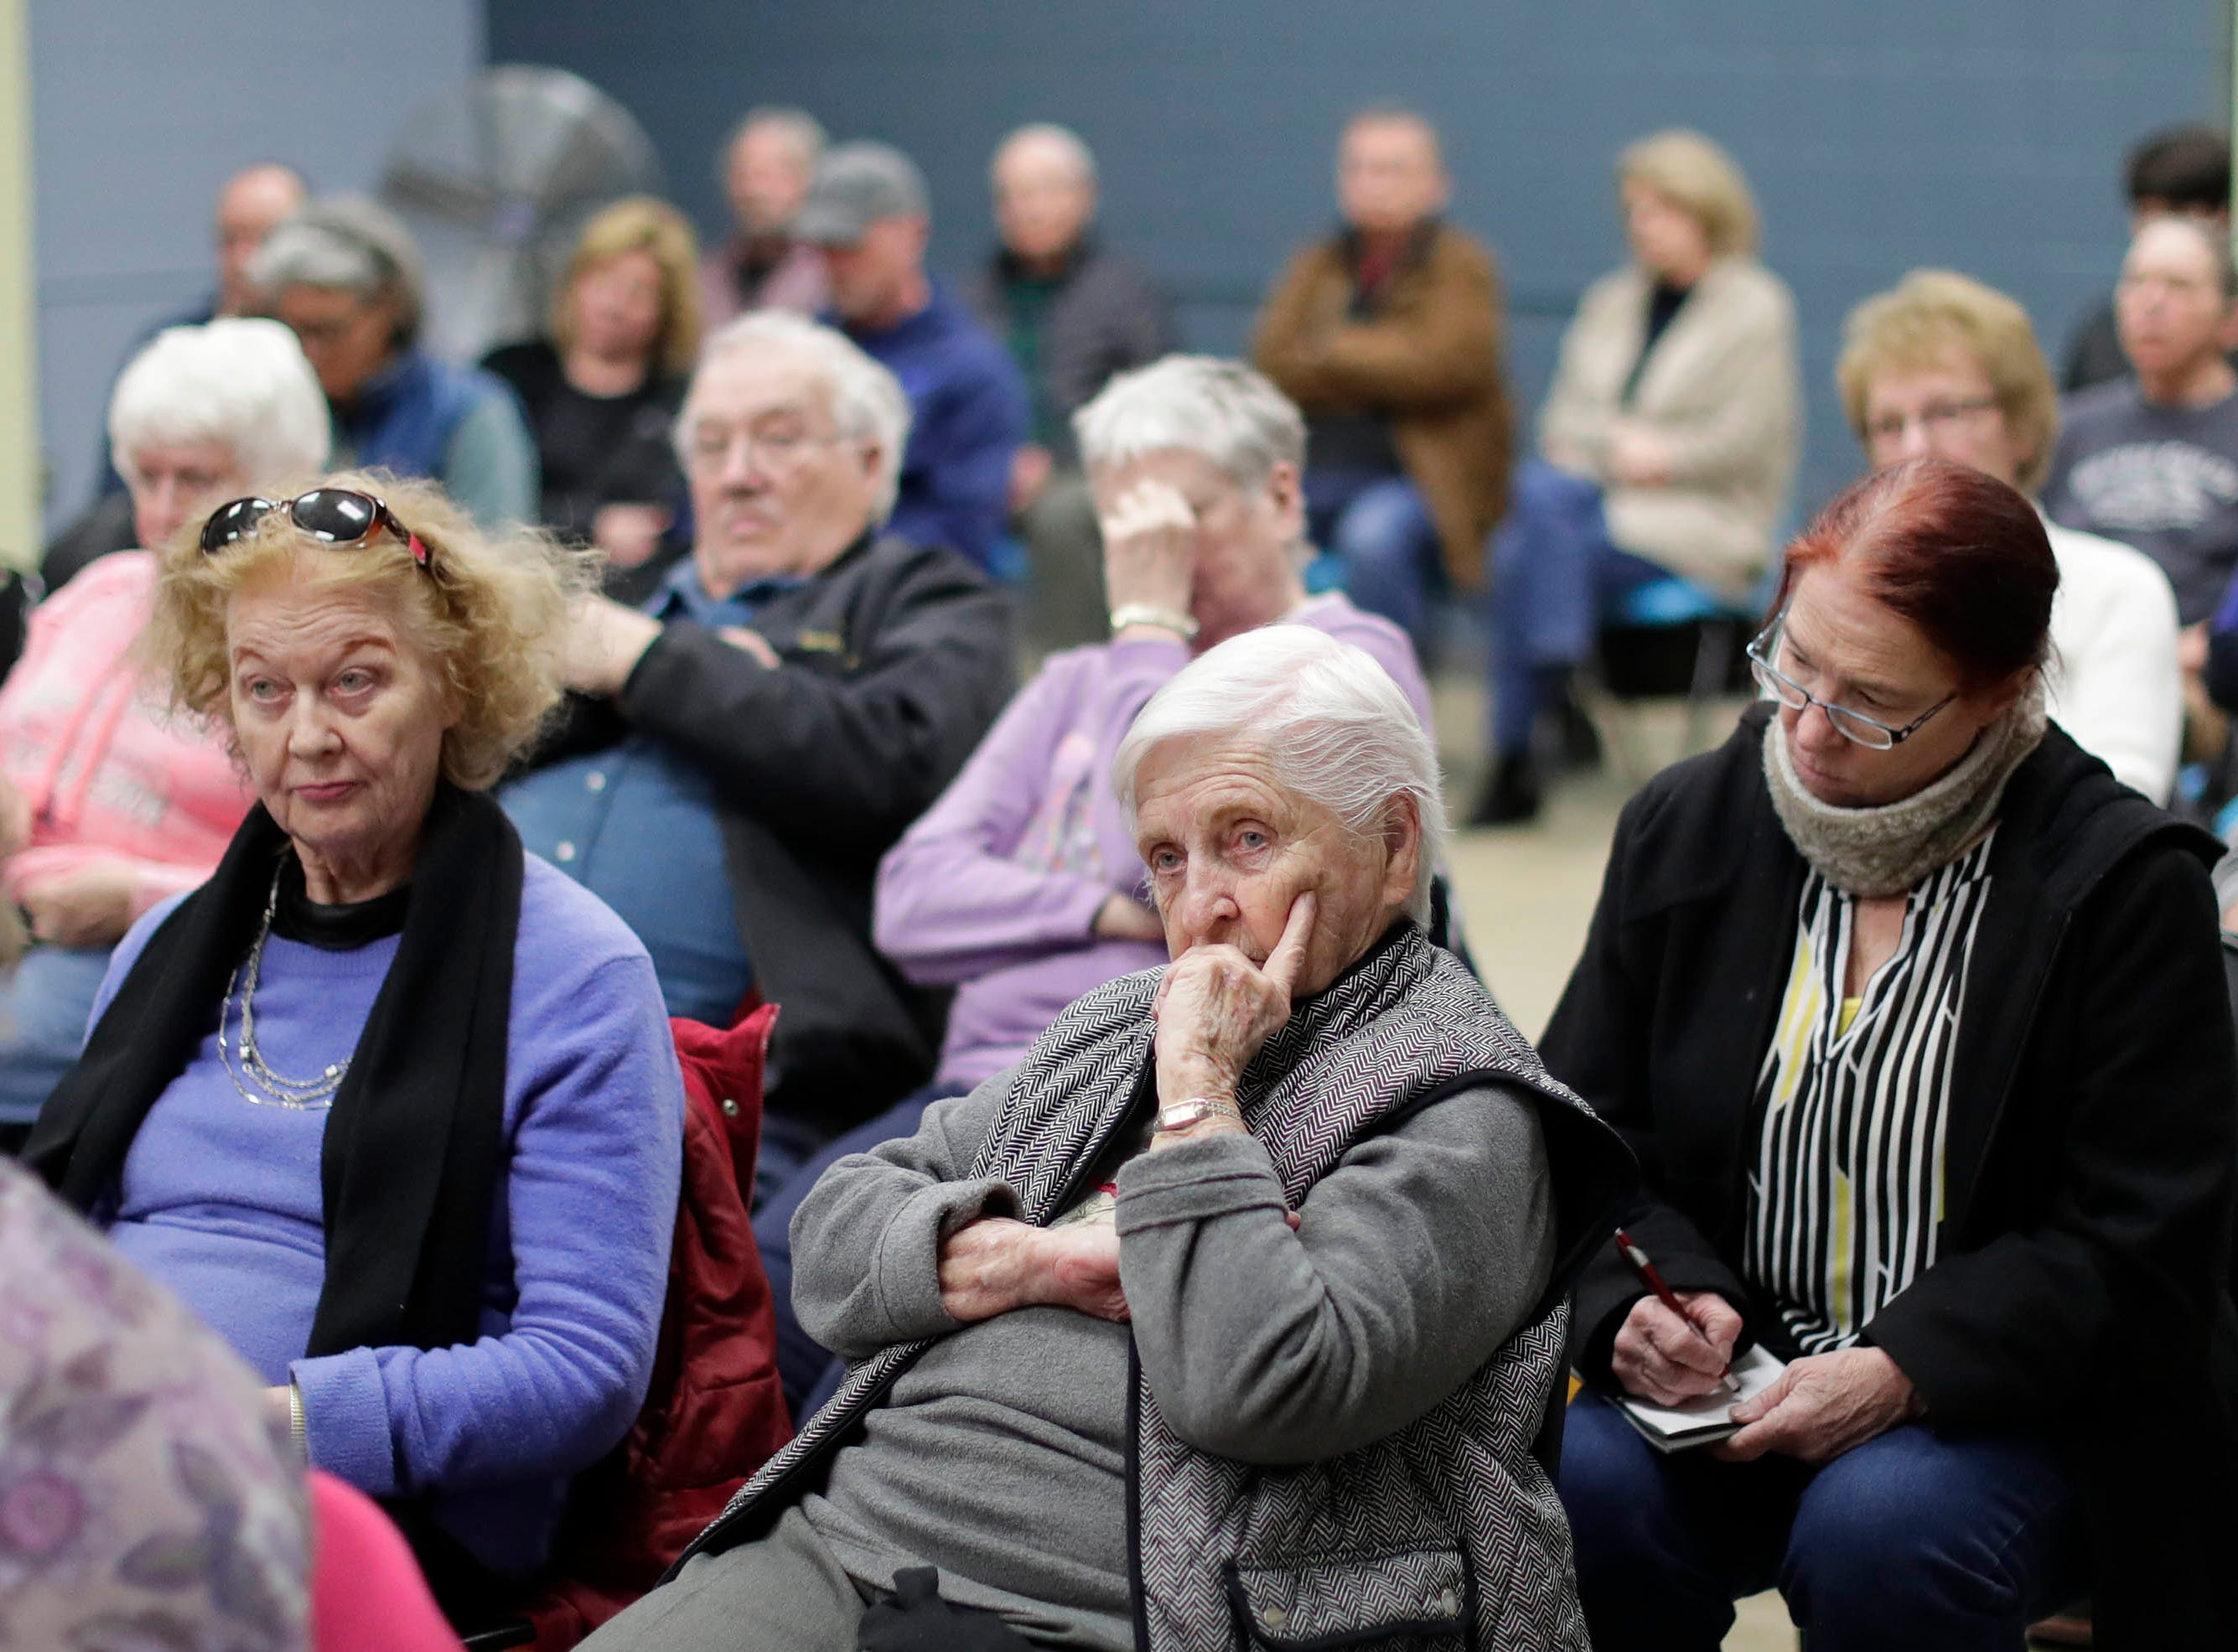 The meeting room at the Sheboygan Senior Activity Center was filled with people interested in the Sheboygan Armory's fate, Tuesday, March 19, 2019, in Sheboygan, Wis.